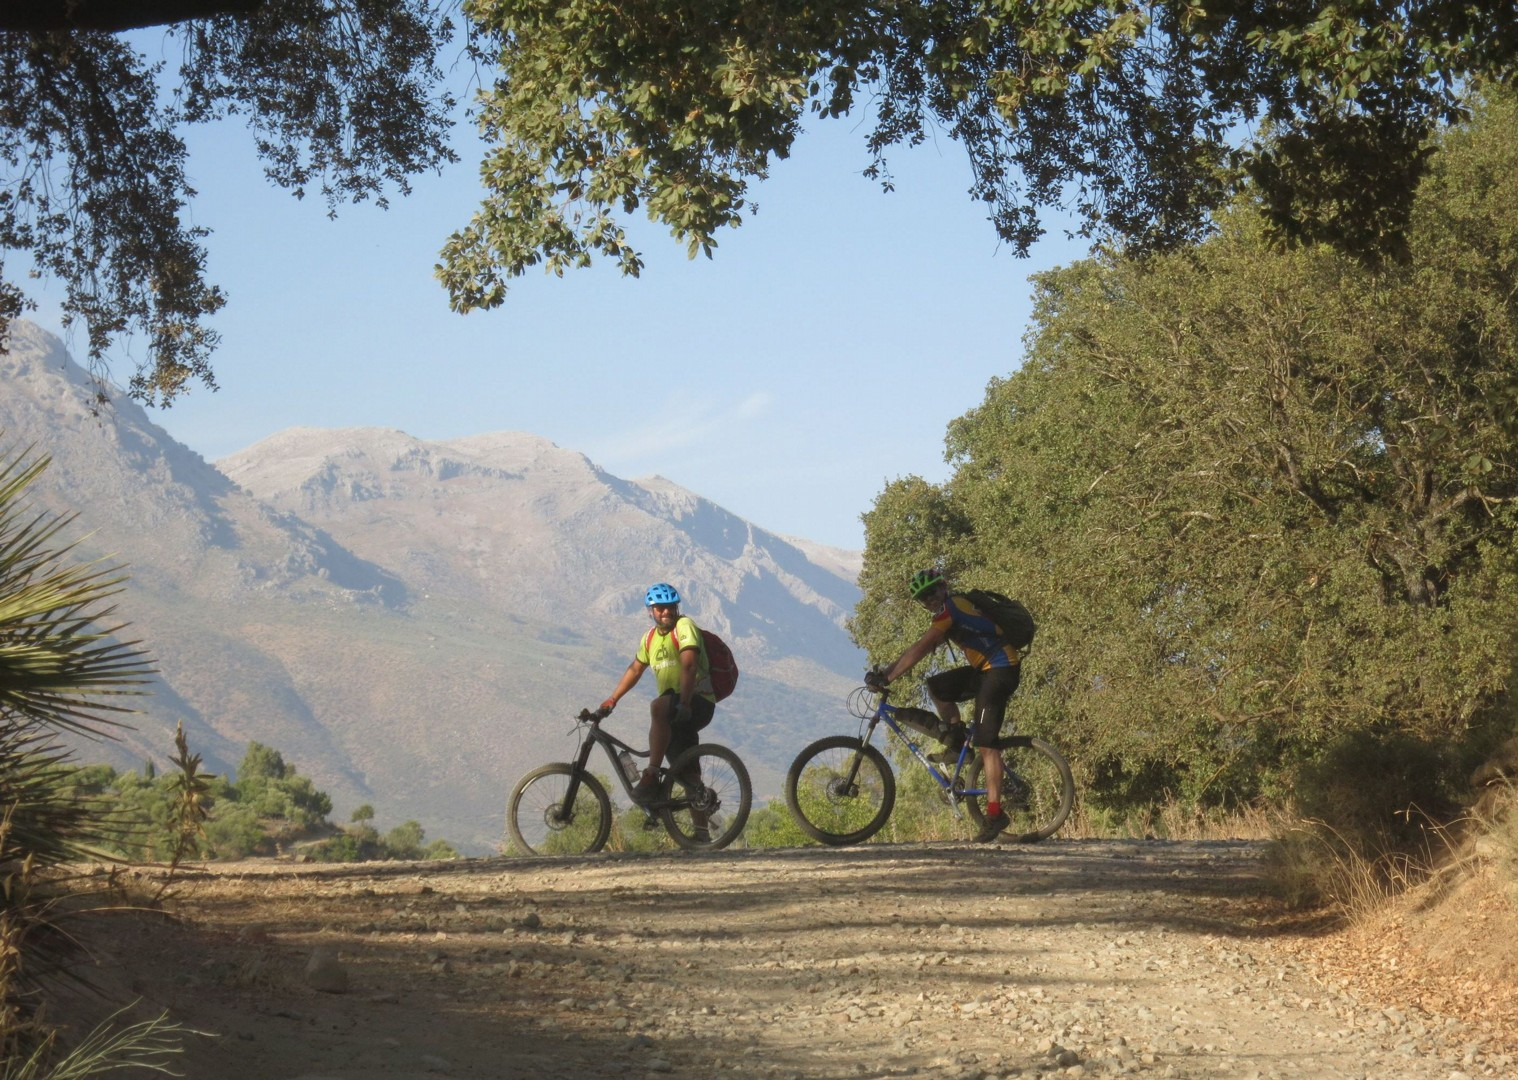 mountain-biking-holiday-in-spain-andalucia-mtb - Spain - Sensational Sierra Nevada - Mountain Biking